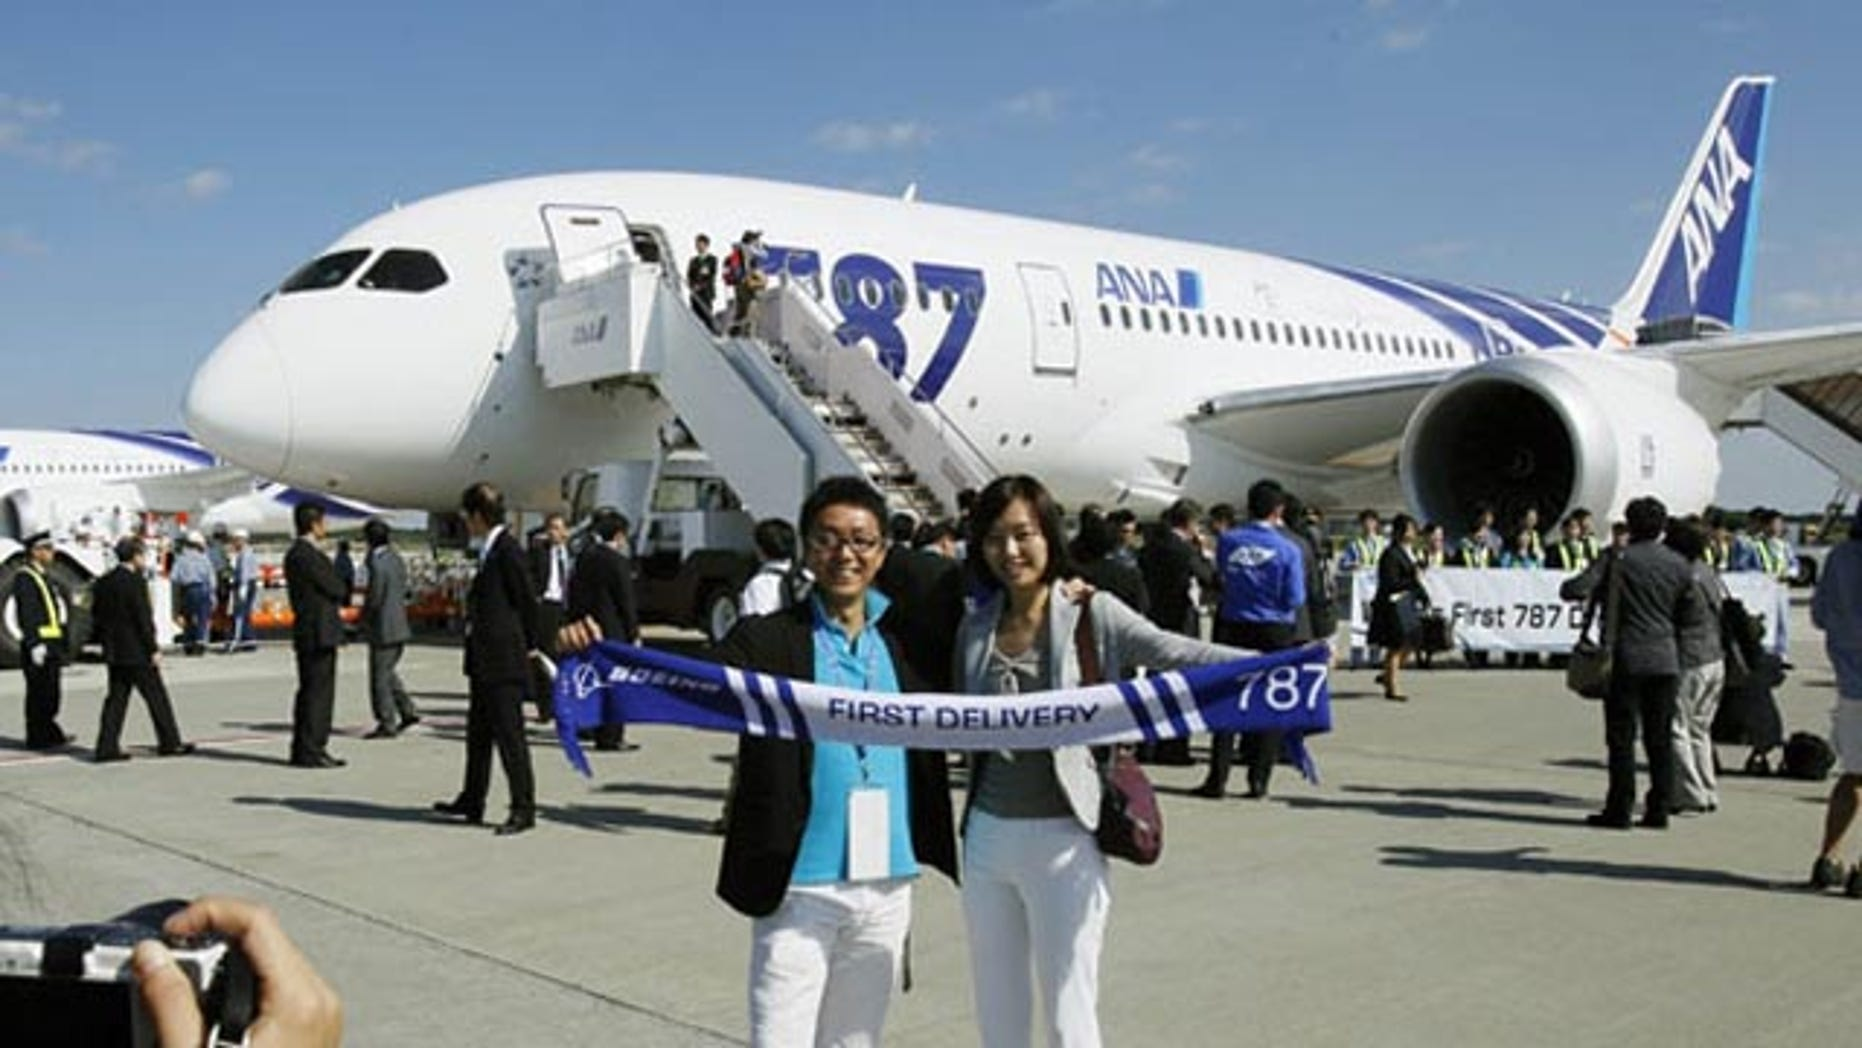 October 26, 2011: An All Nippon Airways Boeing 787 lands at Hong Kong International Airport for the airplane's inaugural commercial flight from Japan.